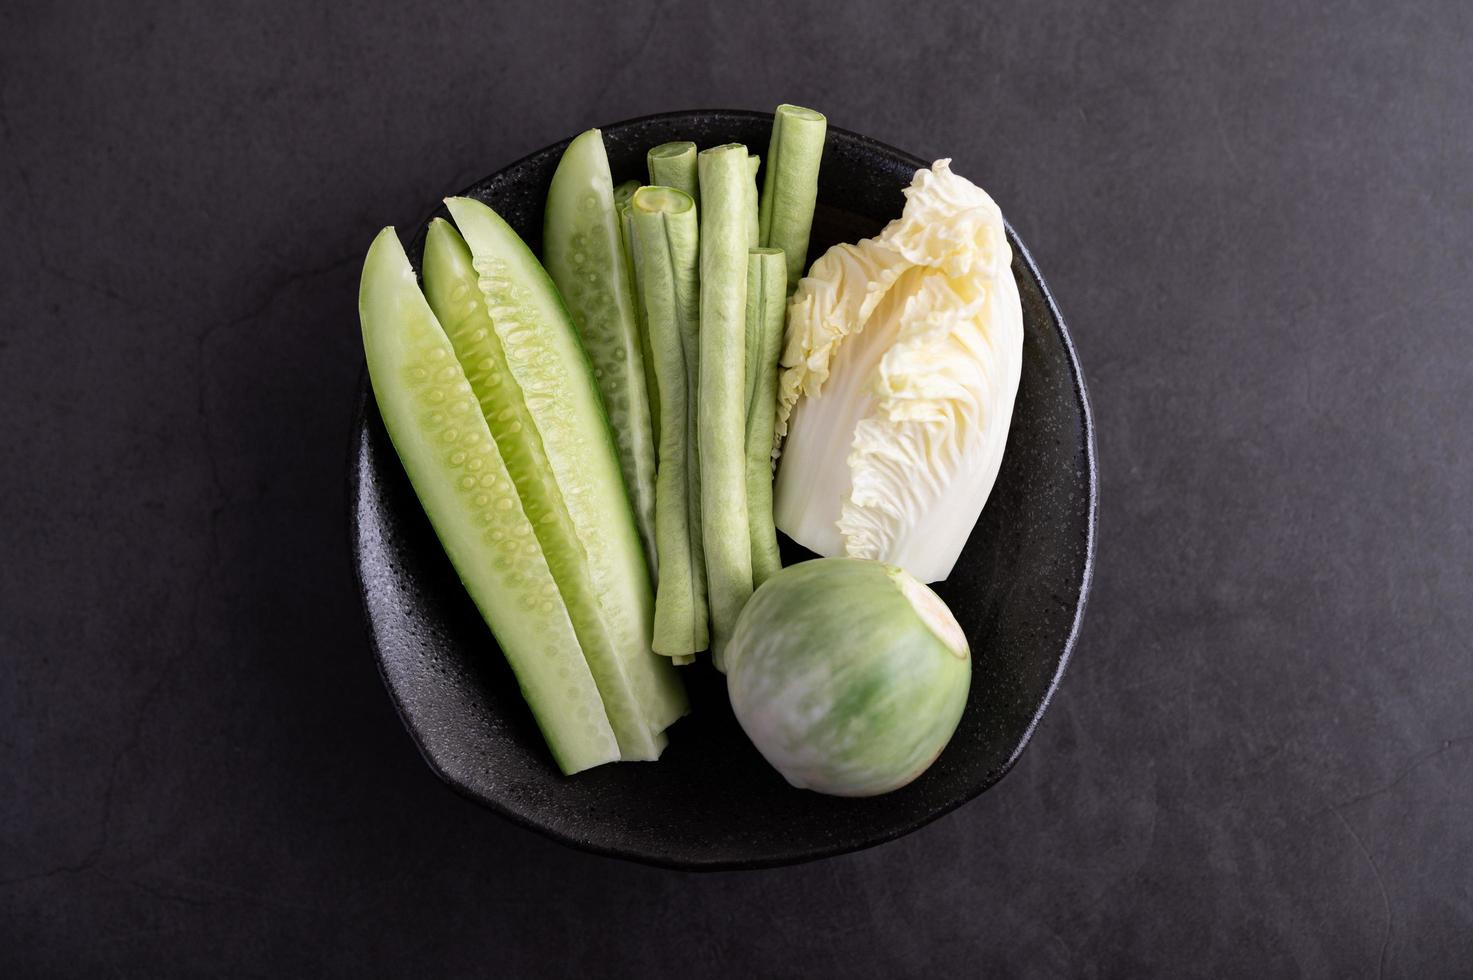 Cucumber, yard long beans, Thai eggplant and white cabbage photo